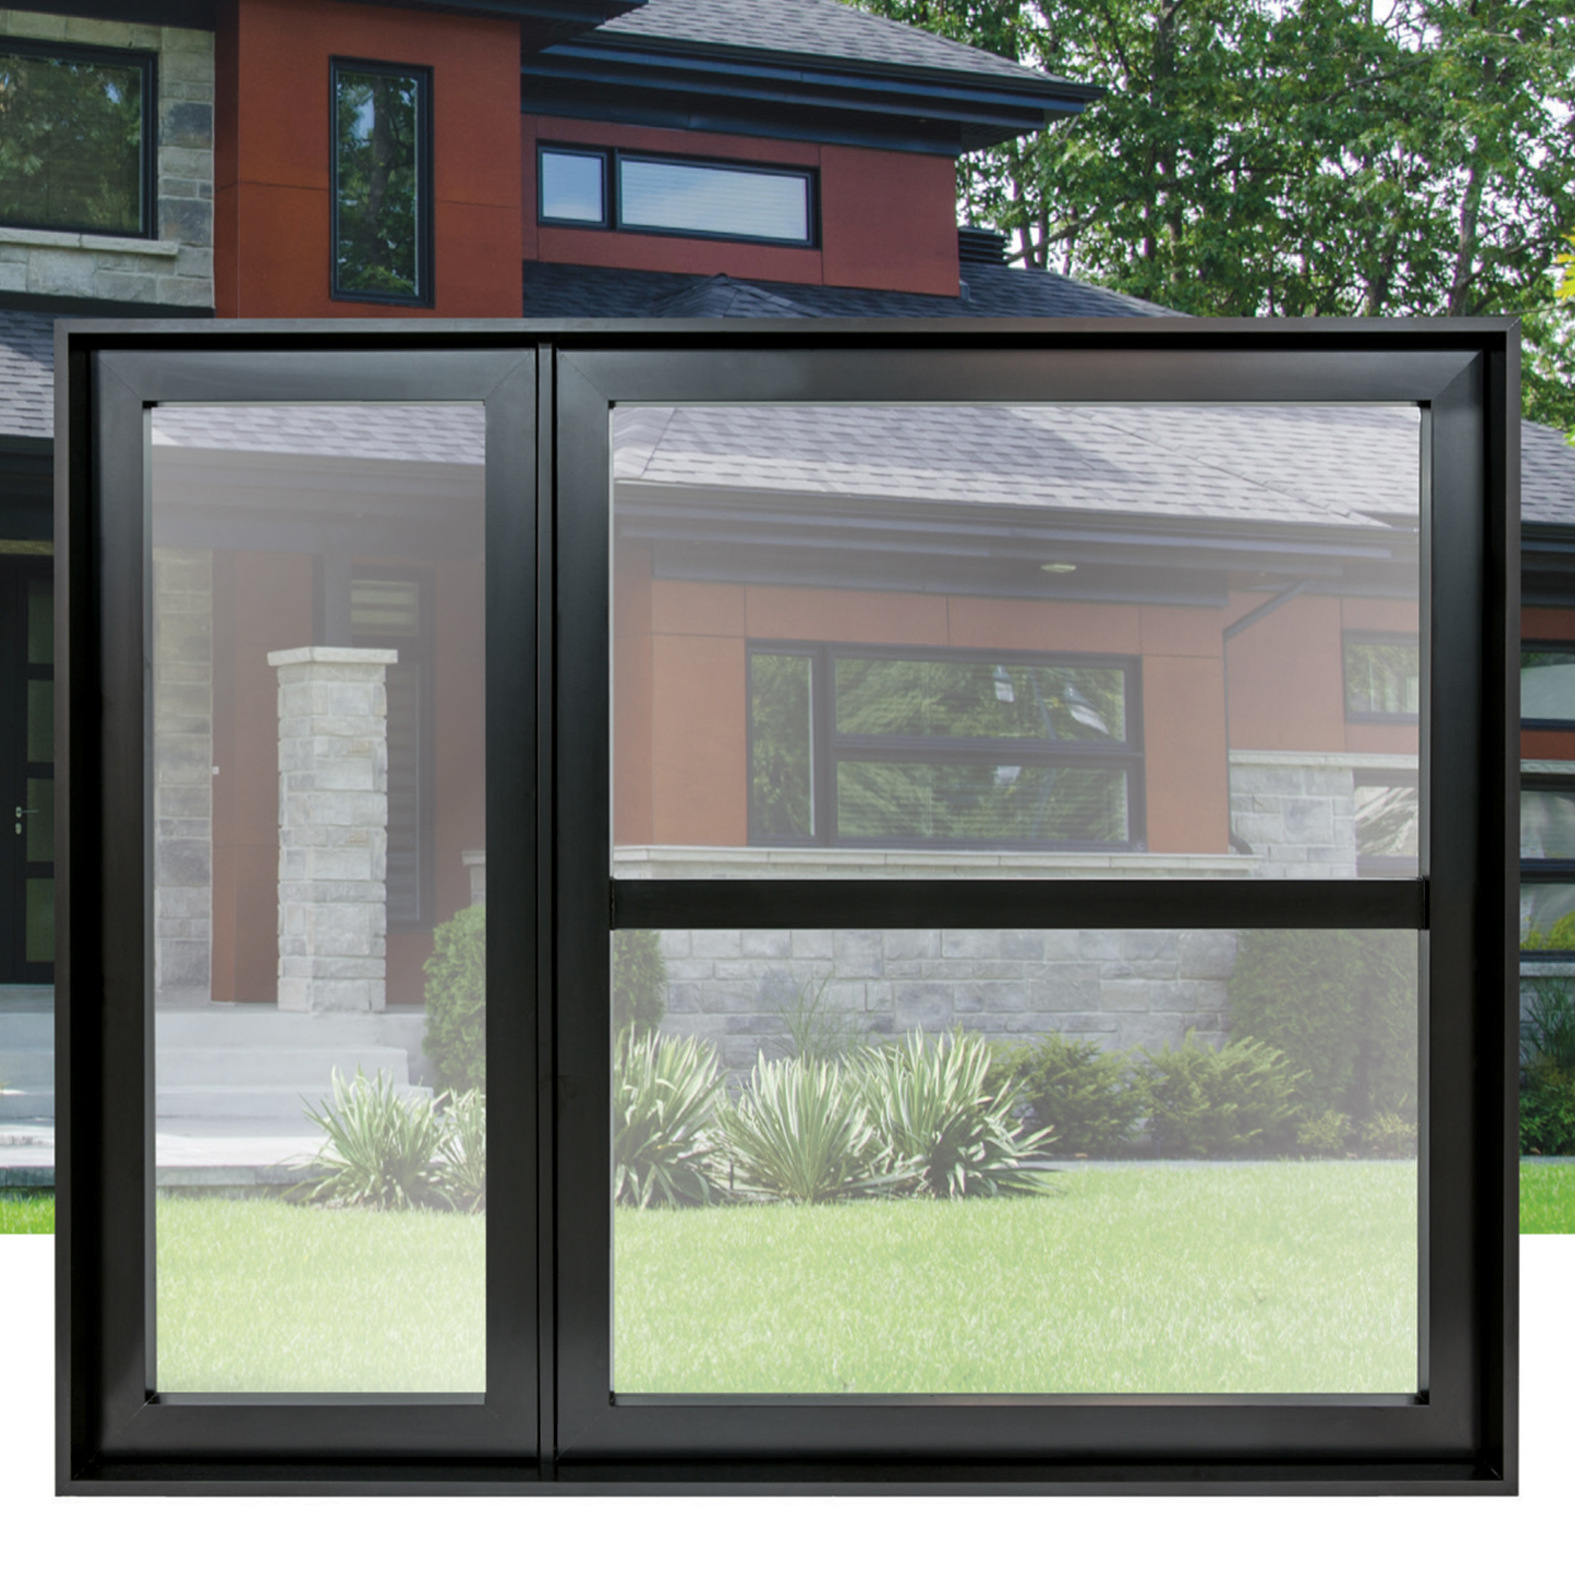 pvc casement or awning window system 3000 series portatec. Black Bedroom Furniture Sets. Home Design Ideas